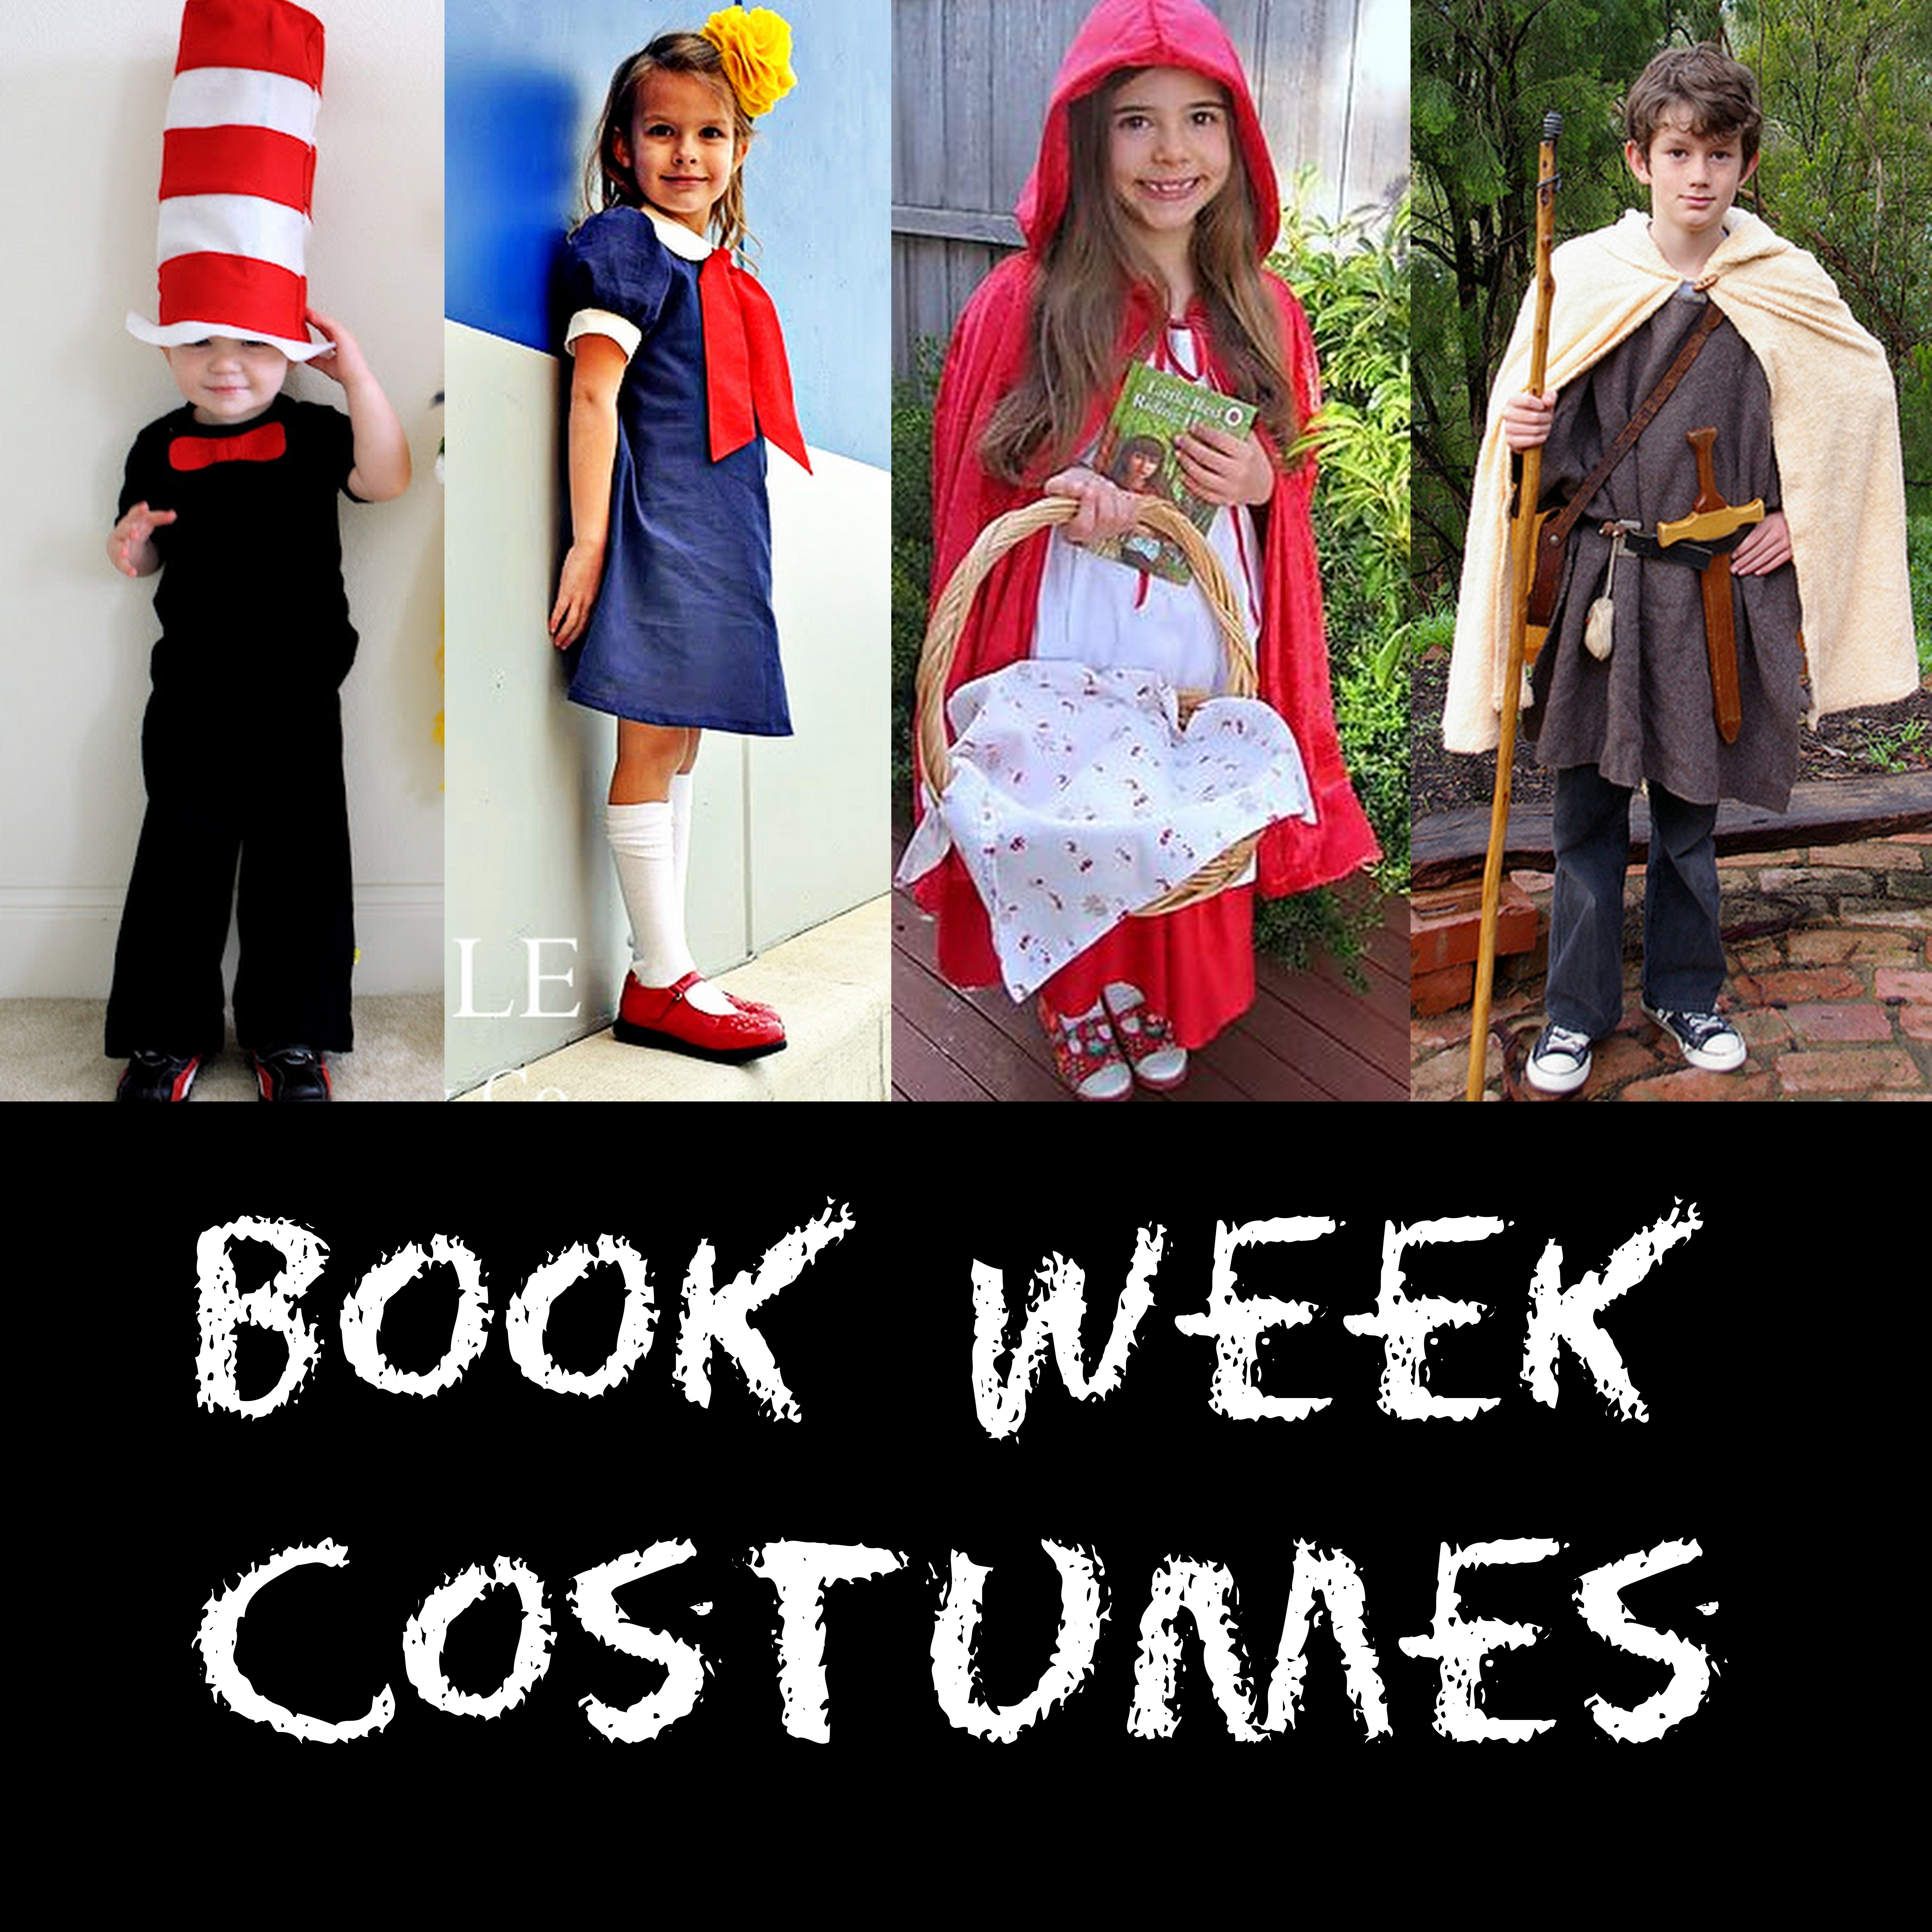 Book character costume clipart picture royalty free library 17 Best images about Book Character Dress Up Ideas on Pinterest ... picture royalty free library